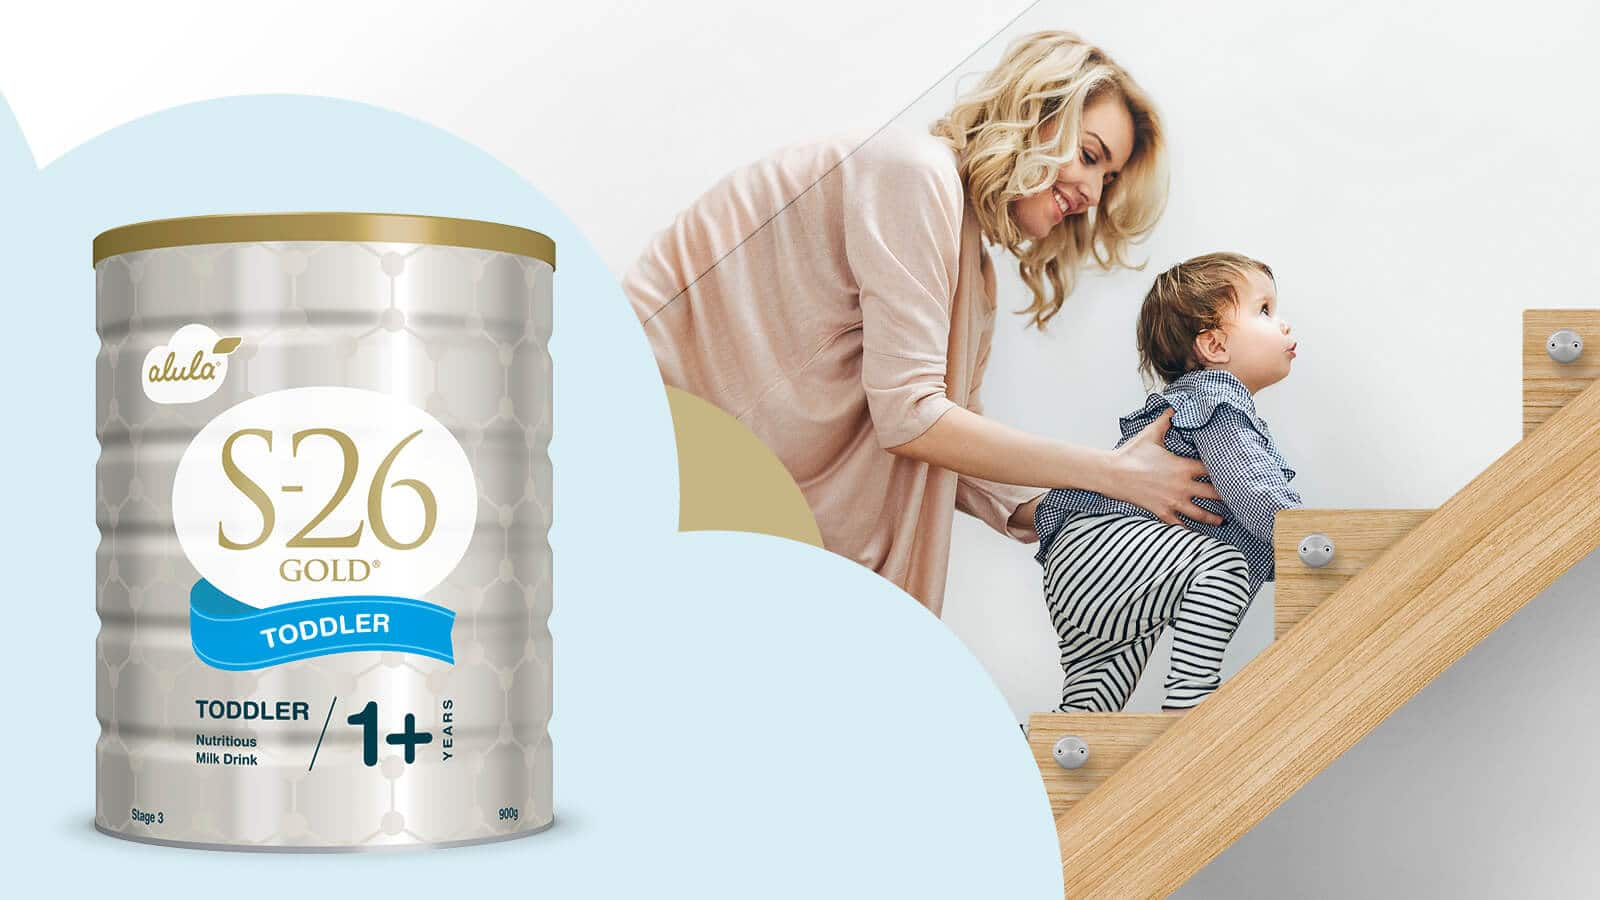 A can of S-26 Gold Toddler in 900g